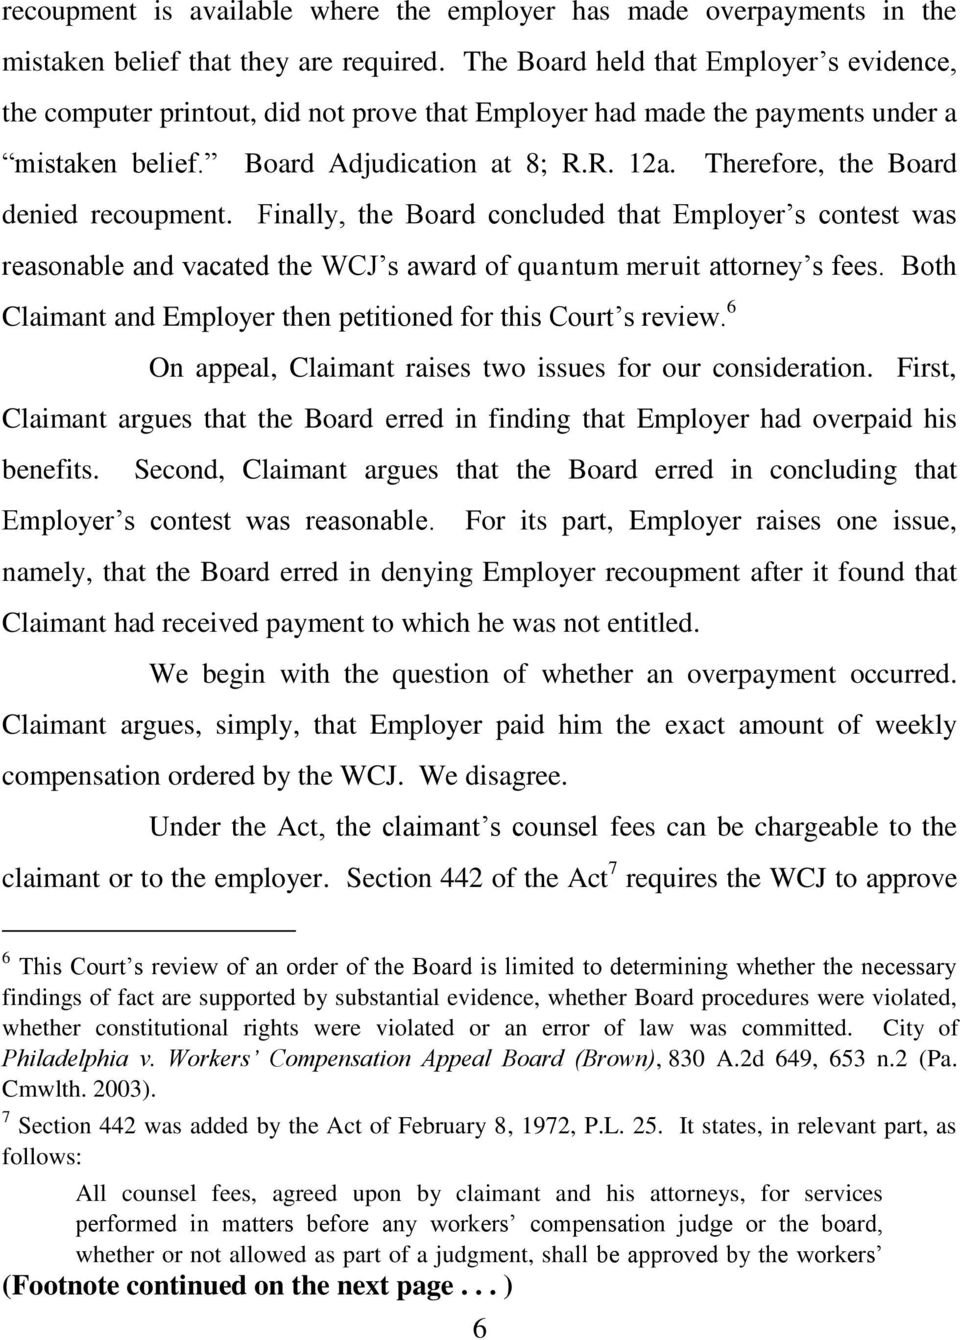 Therefore, the Board denied recoupment. Finally, the Board concluded that Employer s contest was reasonable and vacated the WCJ s award of quantum meruit attorney s fees.